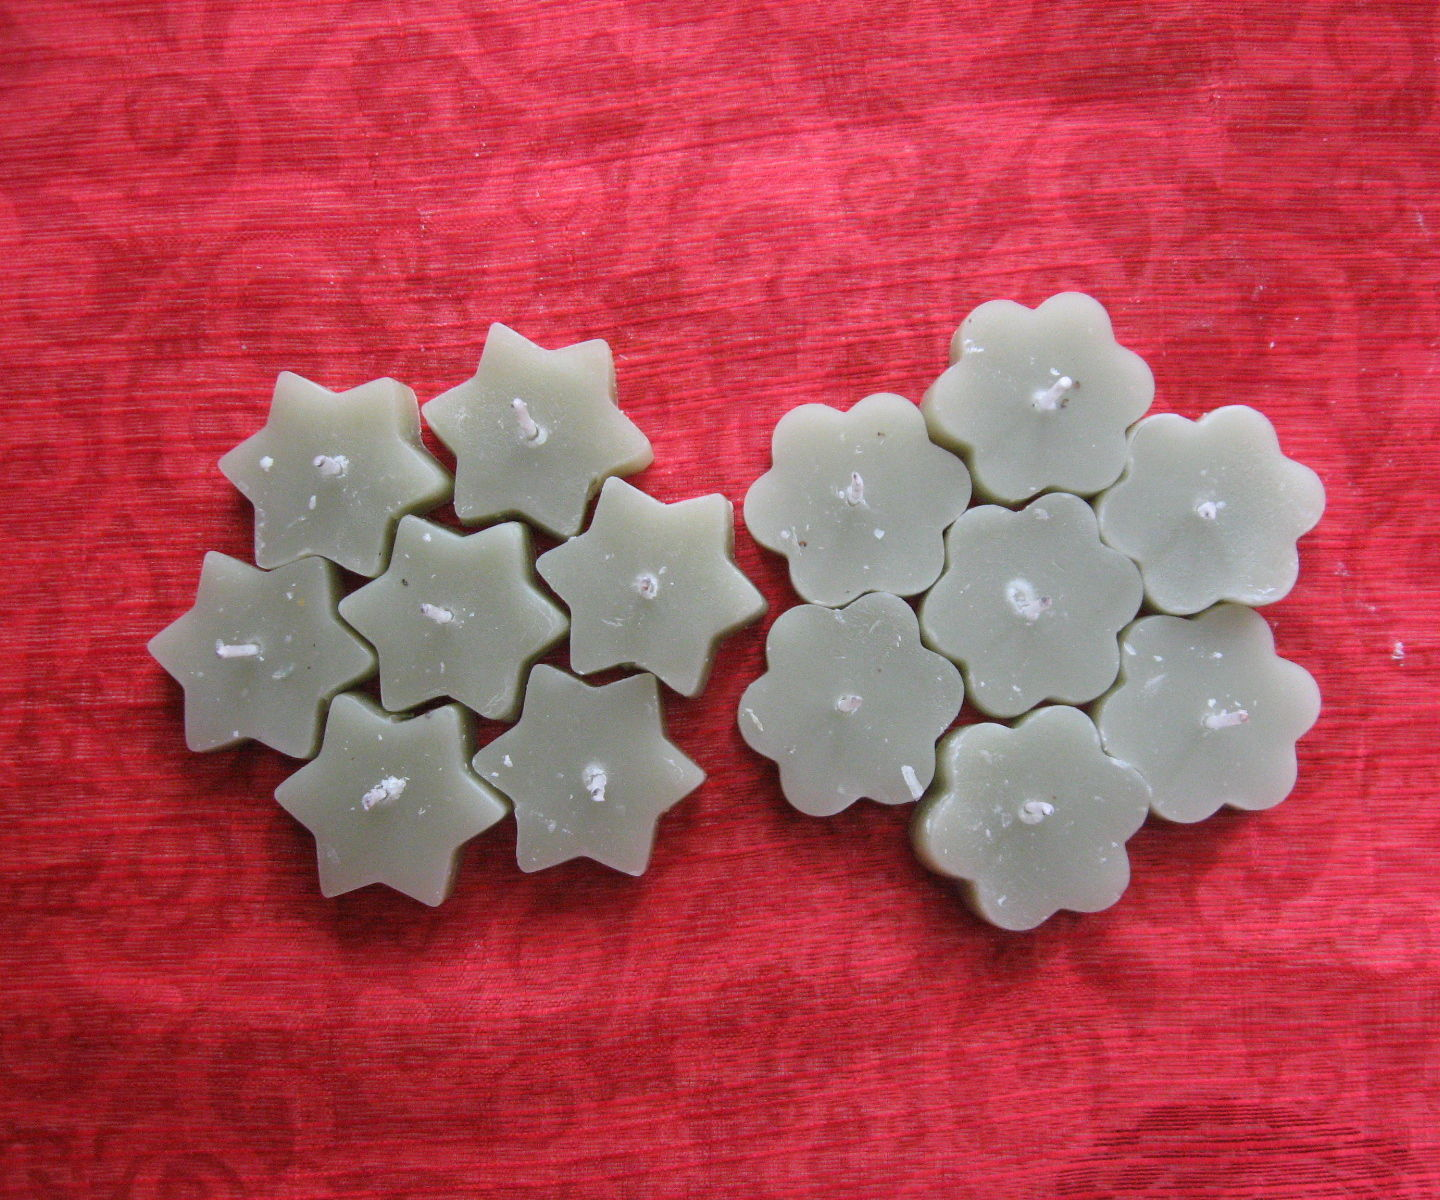 Make Tealight Candles With Left-over Wax and Cookie Cutters